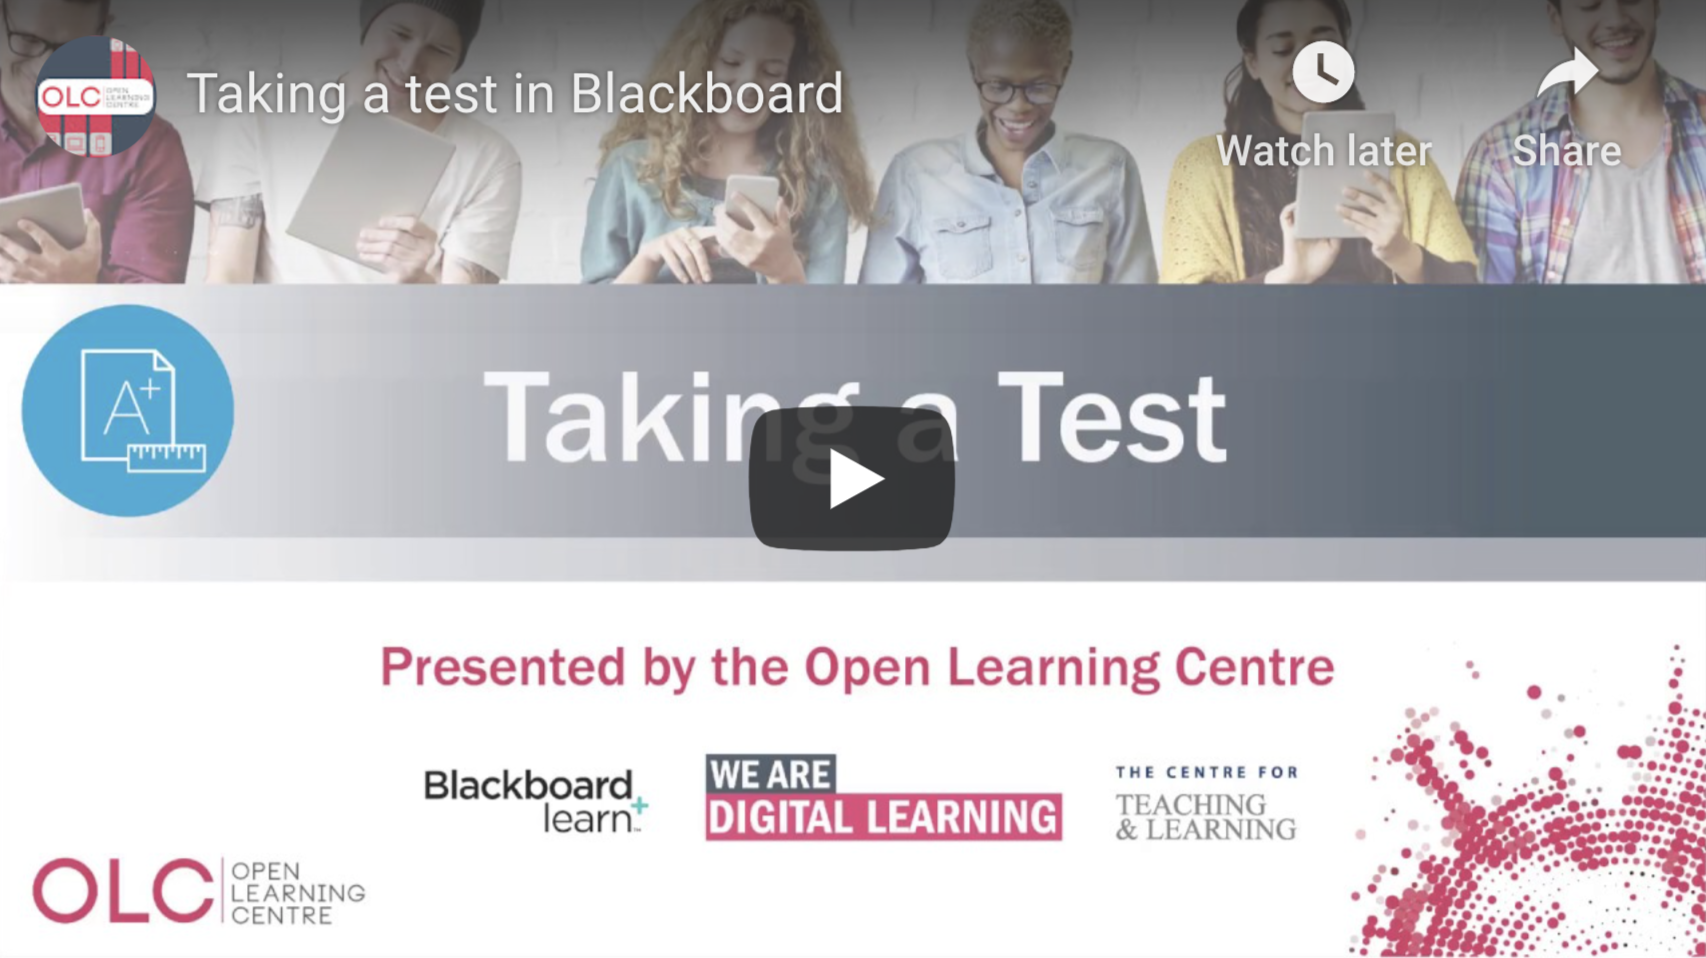 Taking a test in Blackboard - Video